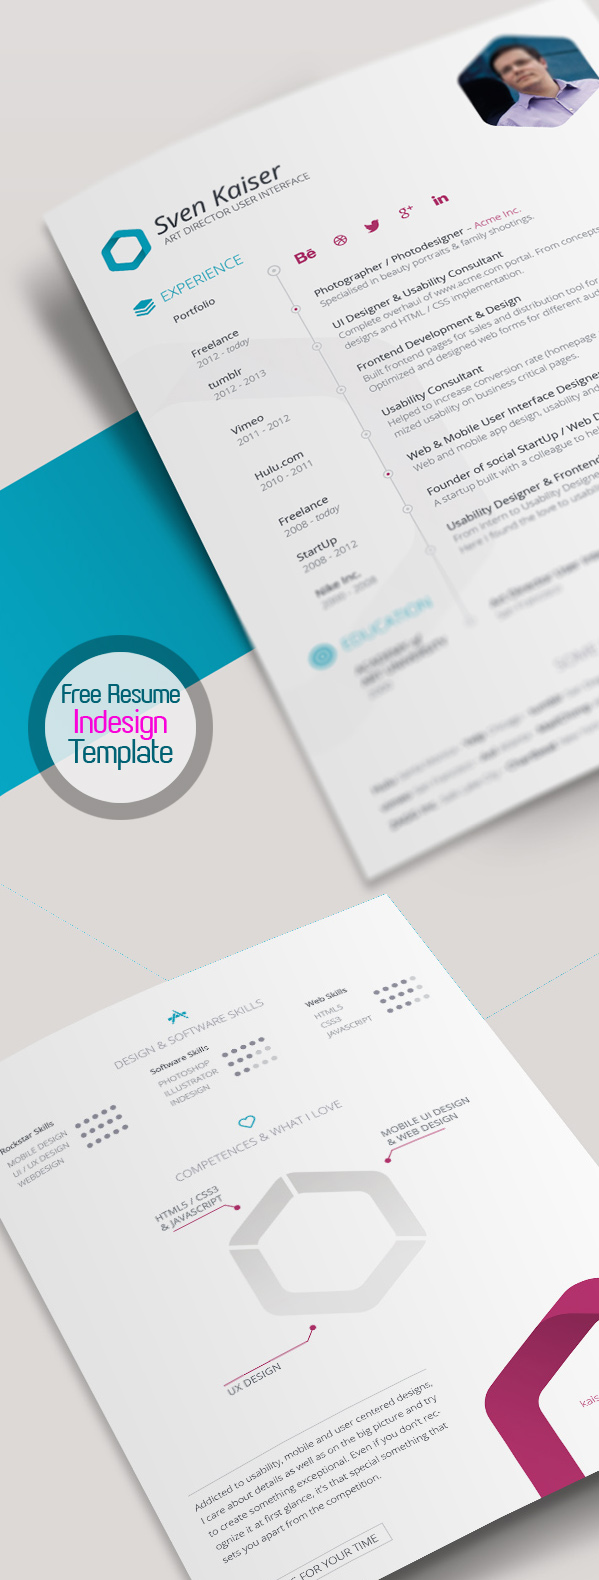 Free modern resume templates psd mockups freebies graphic free resume template for indesign vita cv yelopaper Images